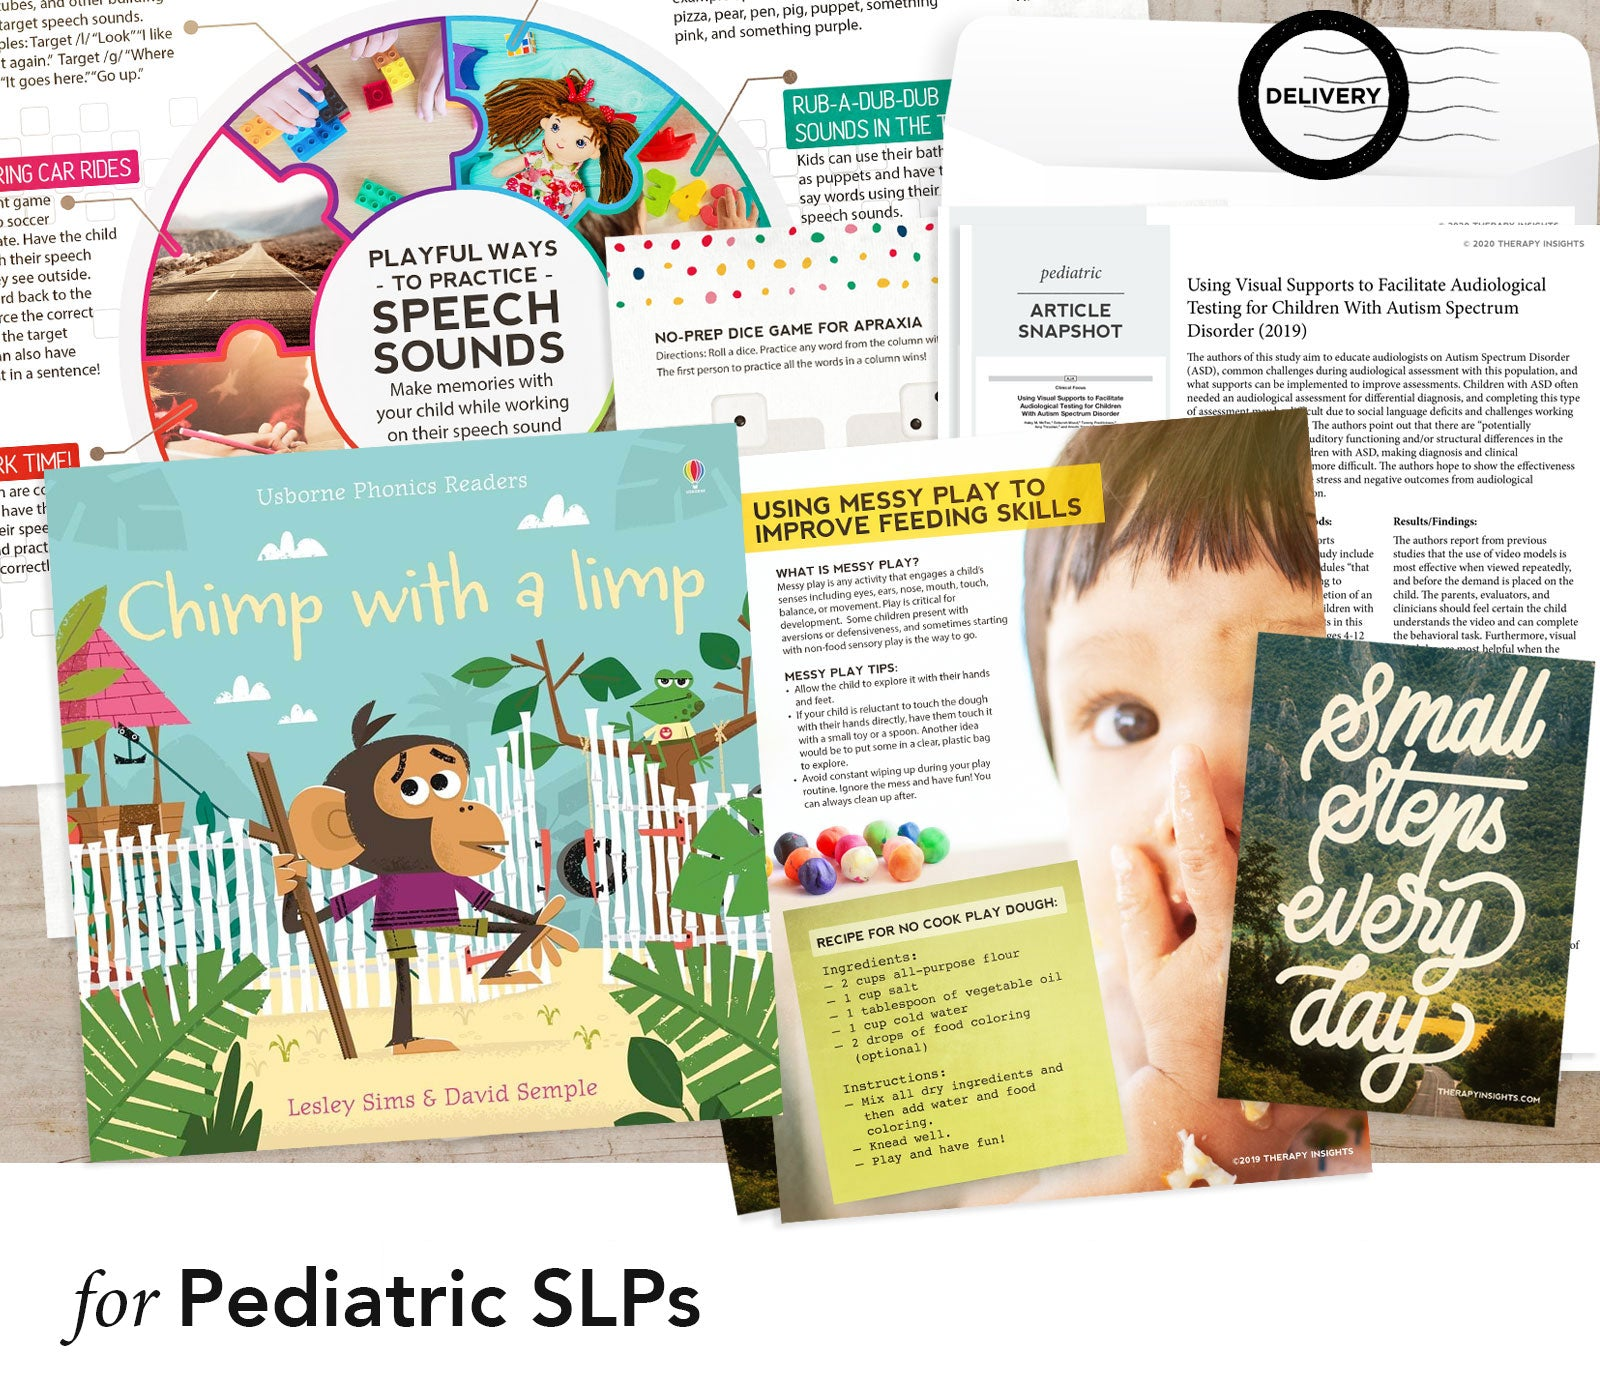 Therapy Fix for Pediatric SLPs